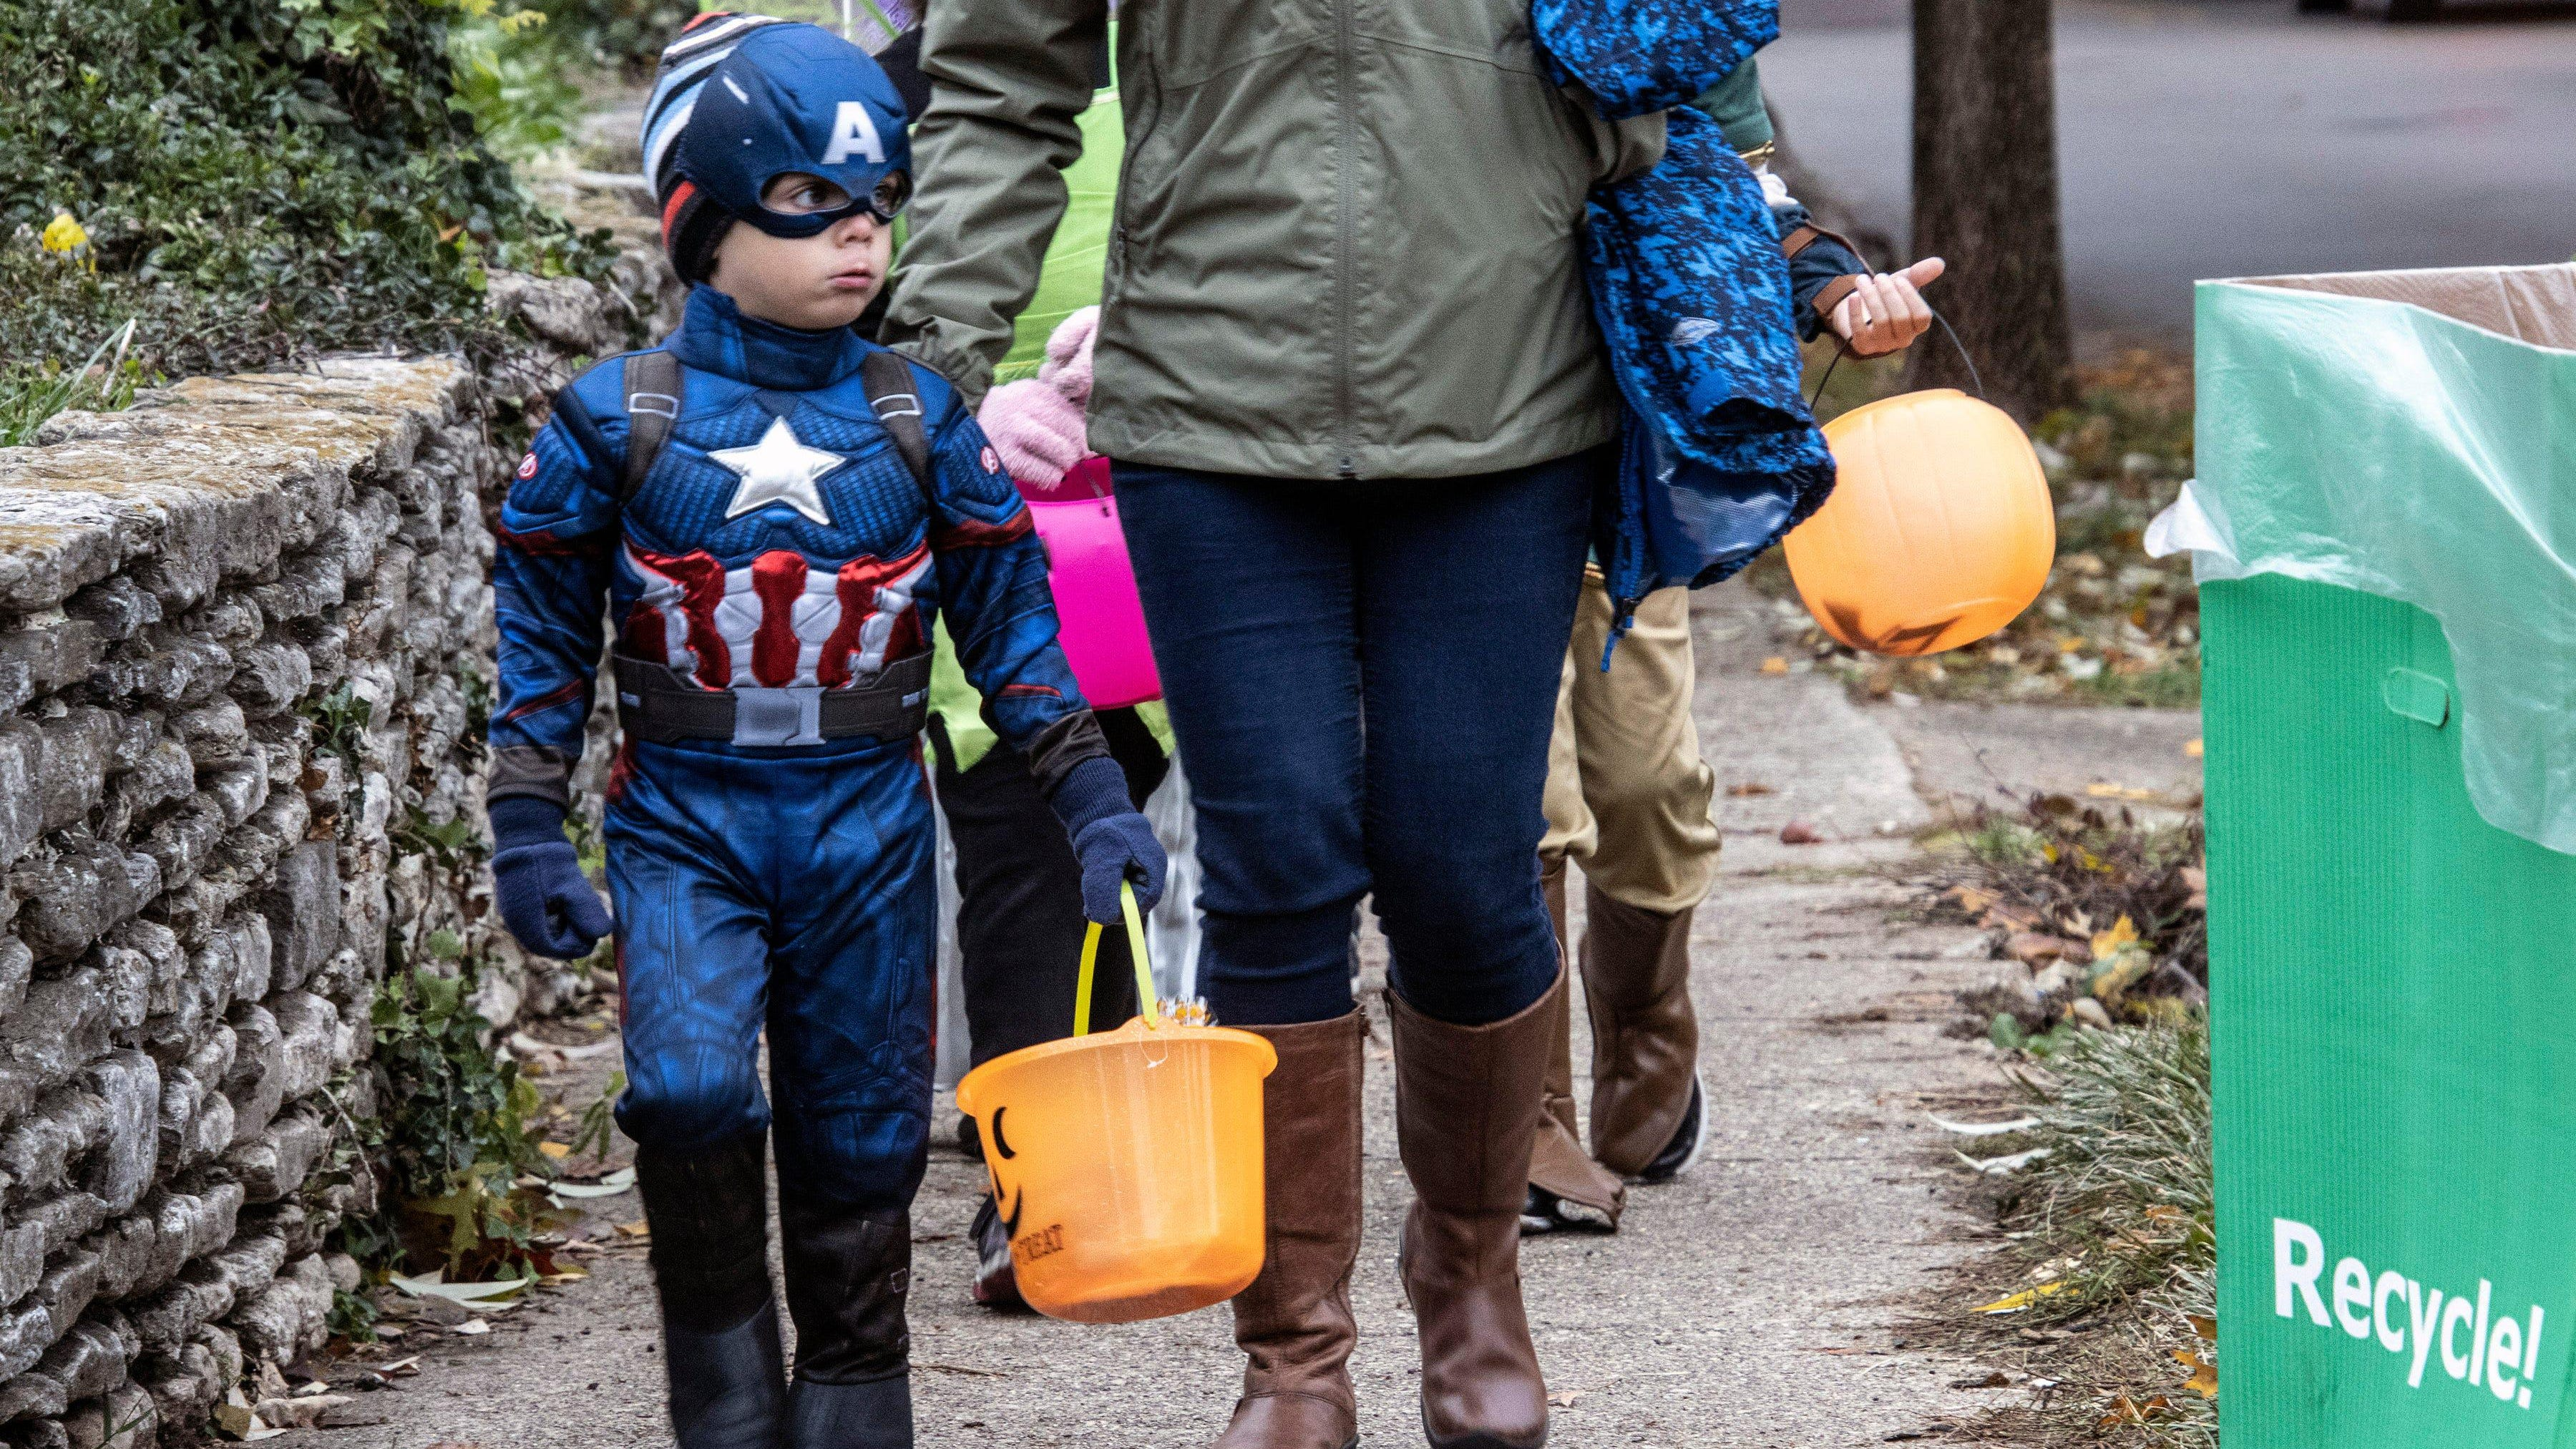 Halloween 2020 Places To Go In Utica New York Cuomo says he will not ban trick or treating this Halloween in New